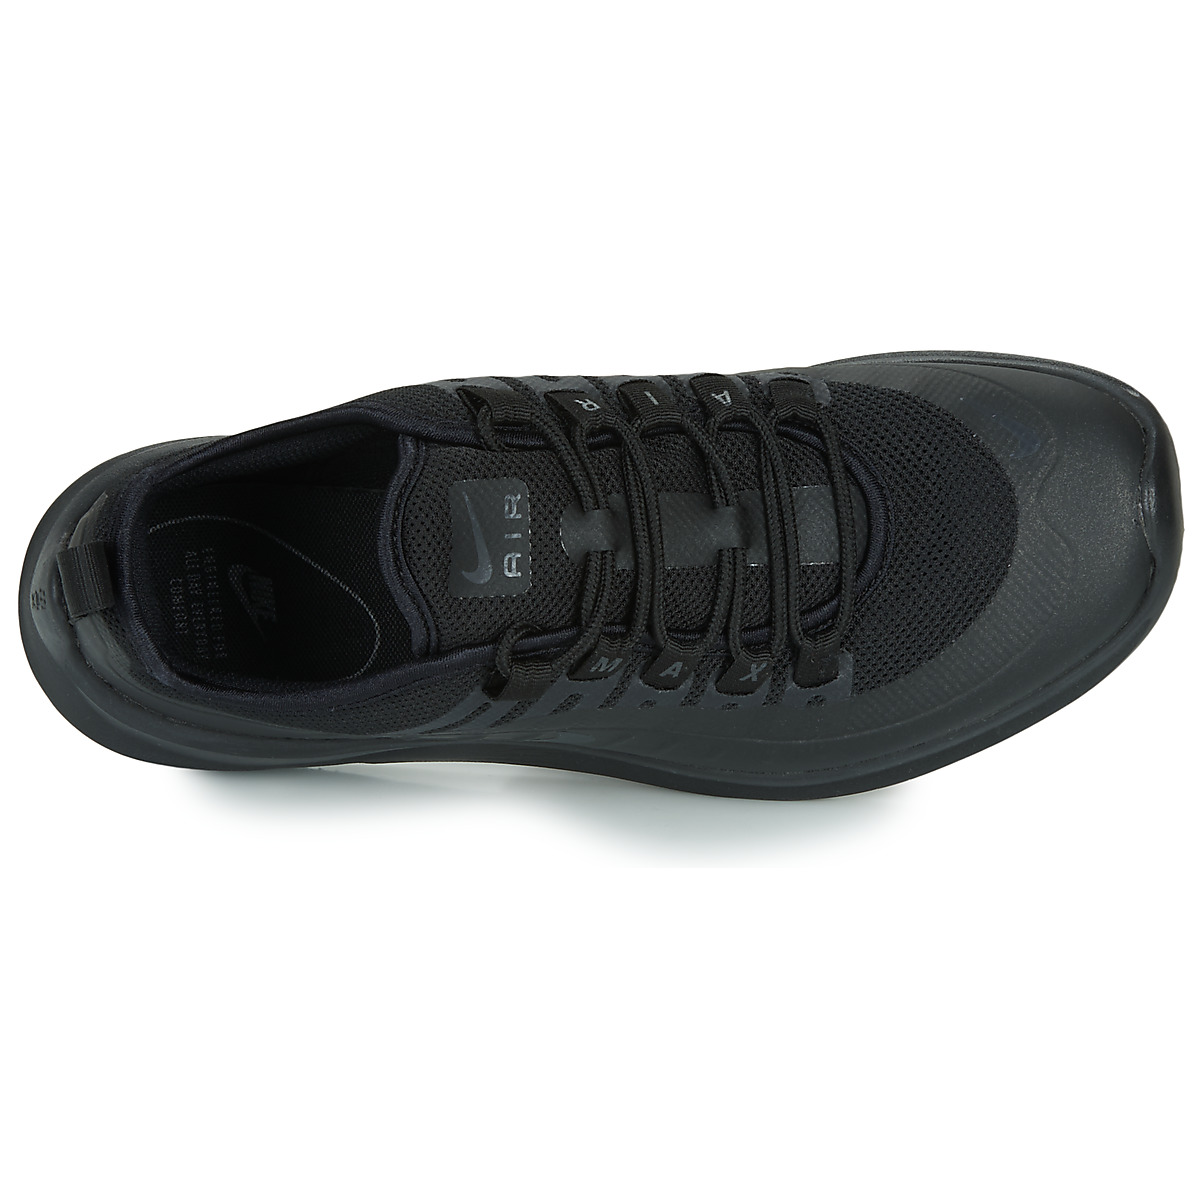 Nike AIR MAX AXIS Nero 16774253 Consegna Gratuita OutletScarpeOnline.it